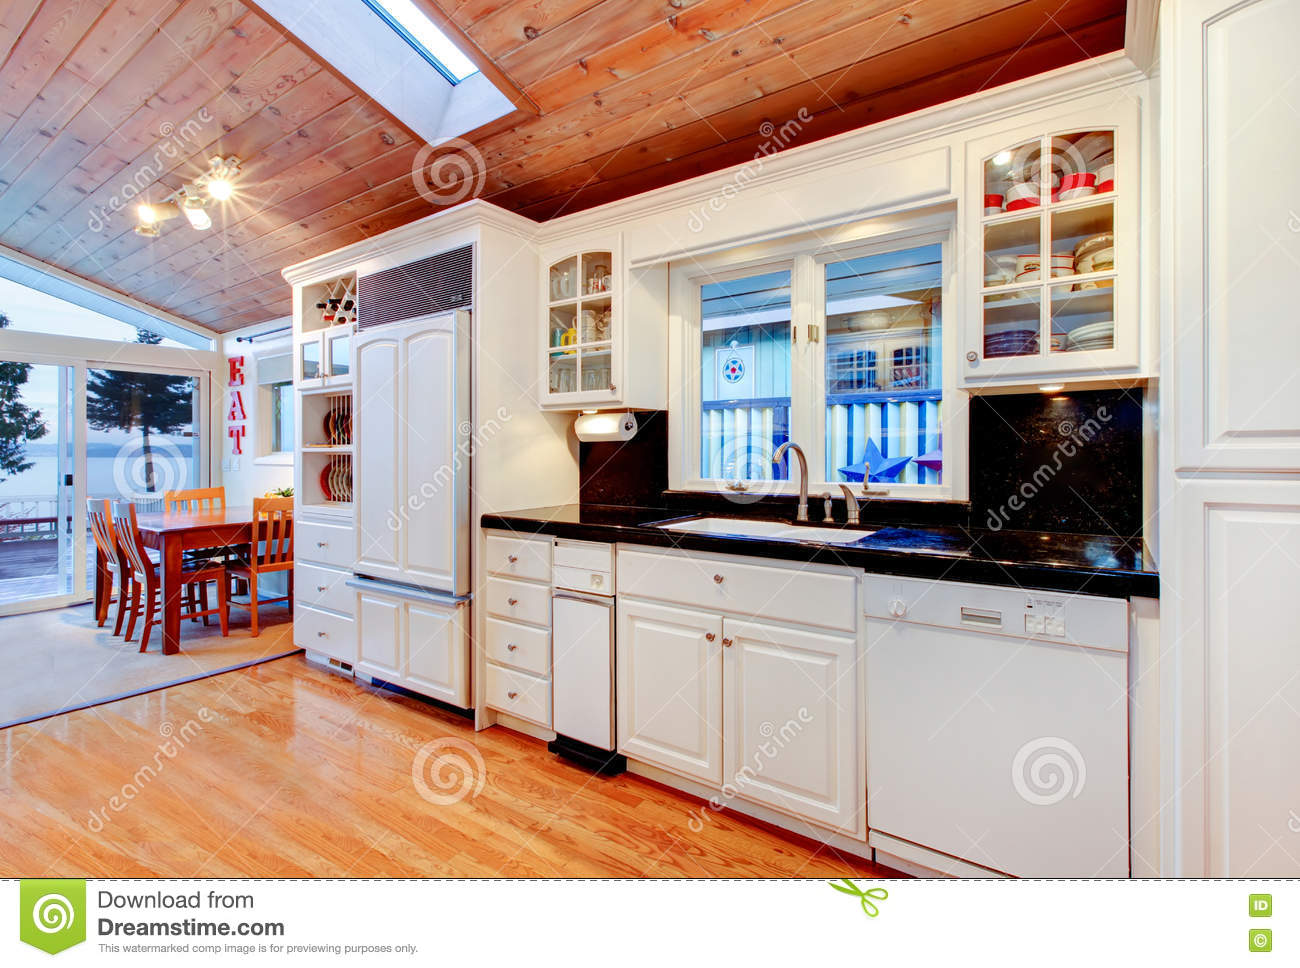 White Kitchen Cabinets With Black Counter Tops In Luxury House Stock Image Image Of Hardwood Stool 75361541